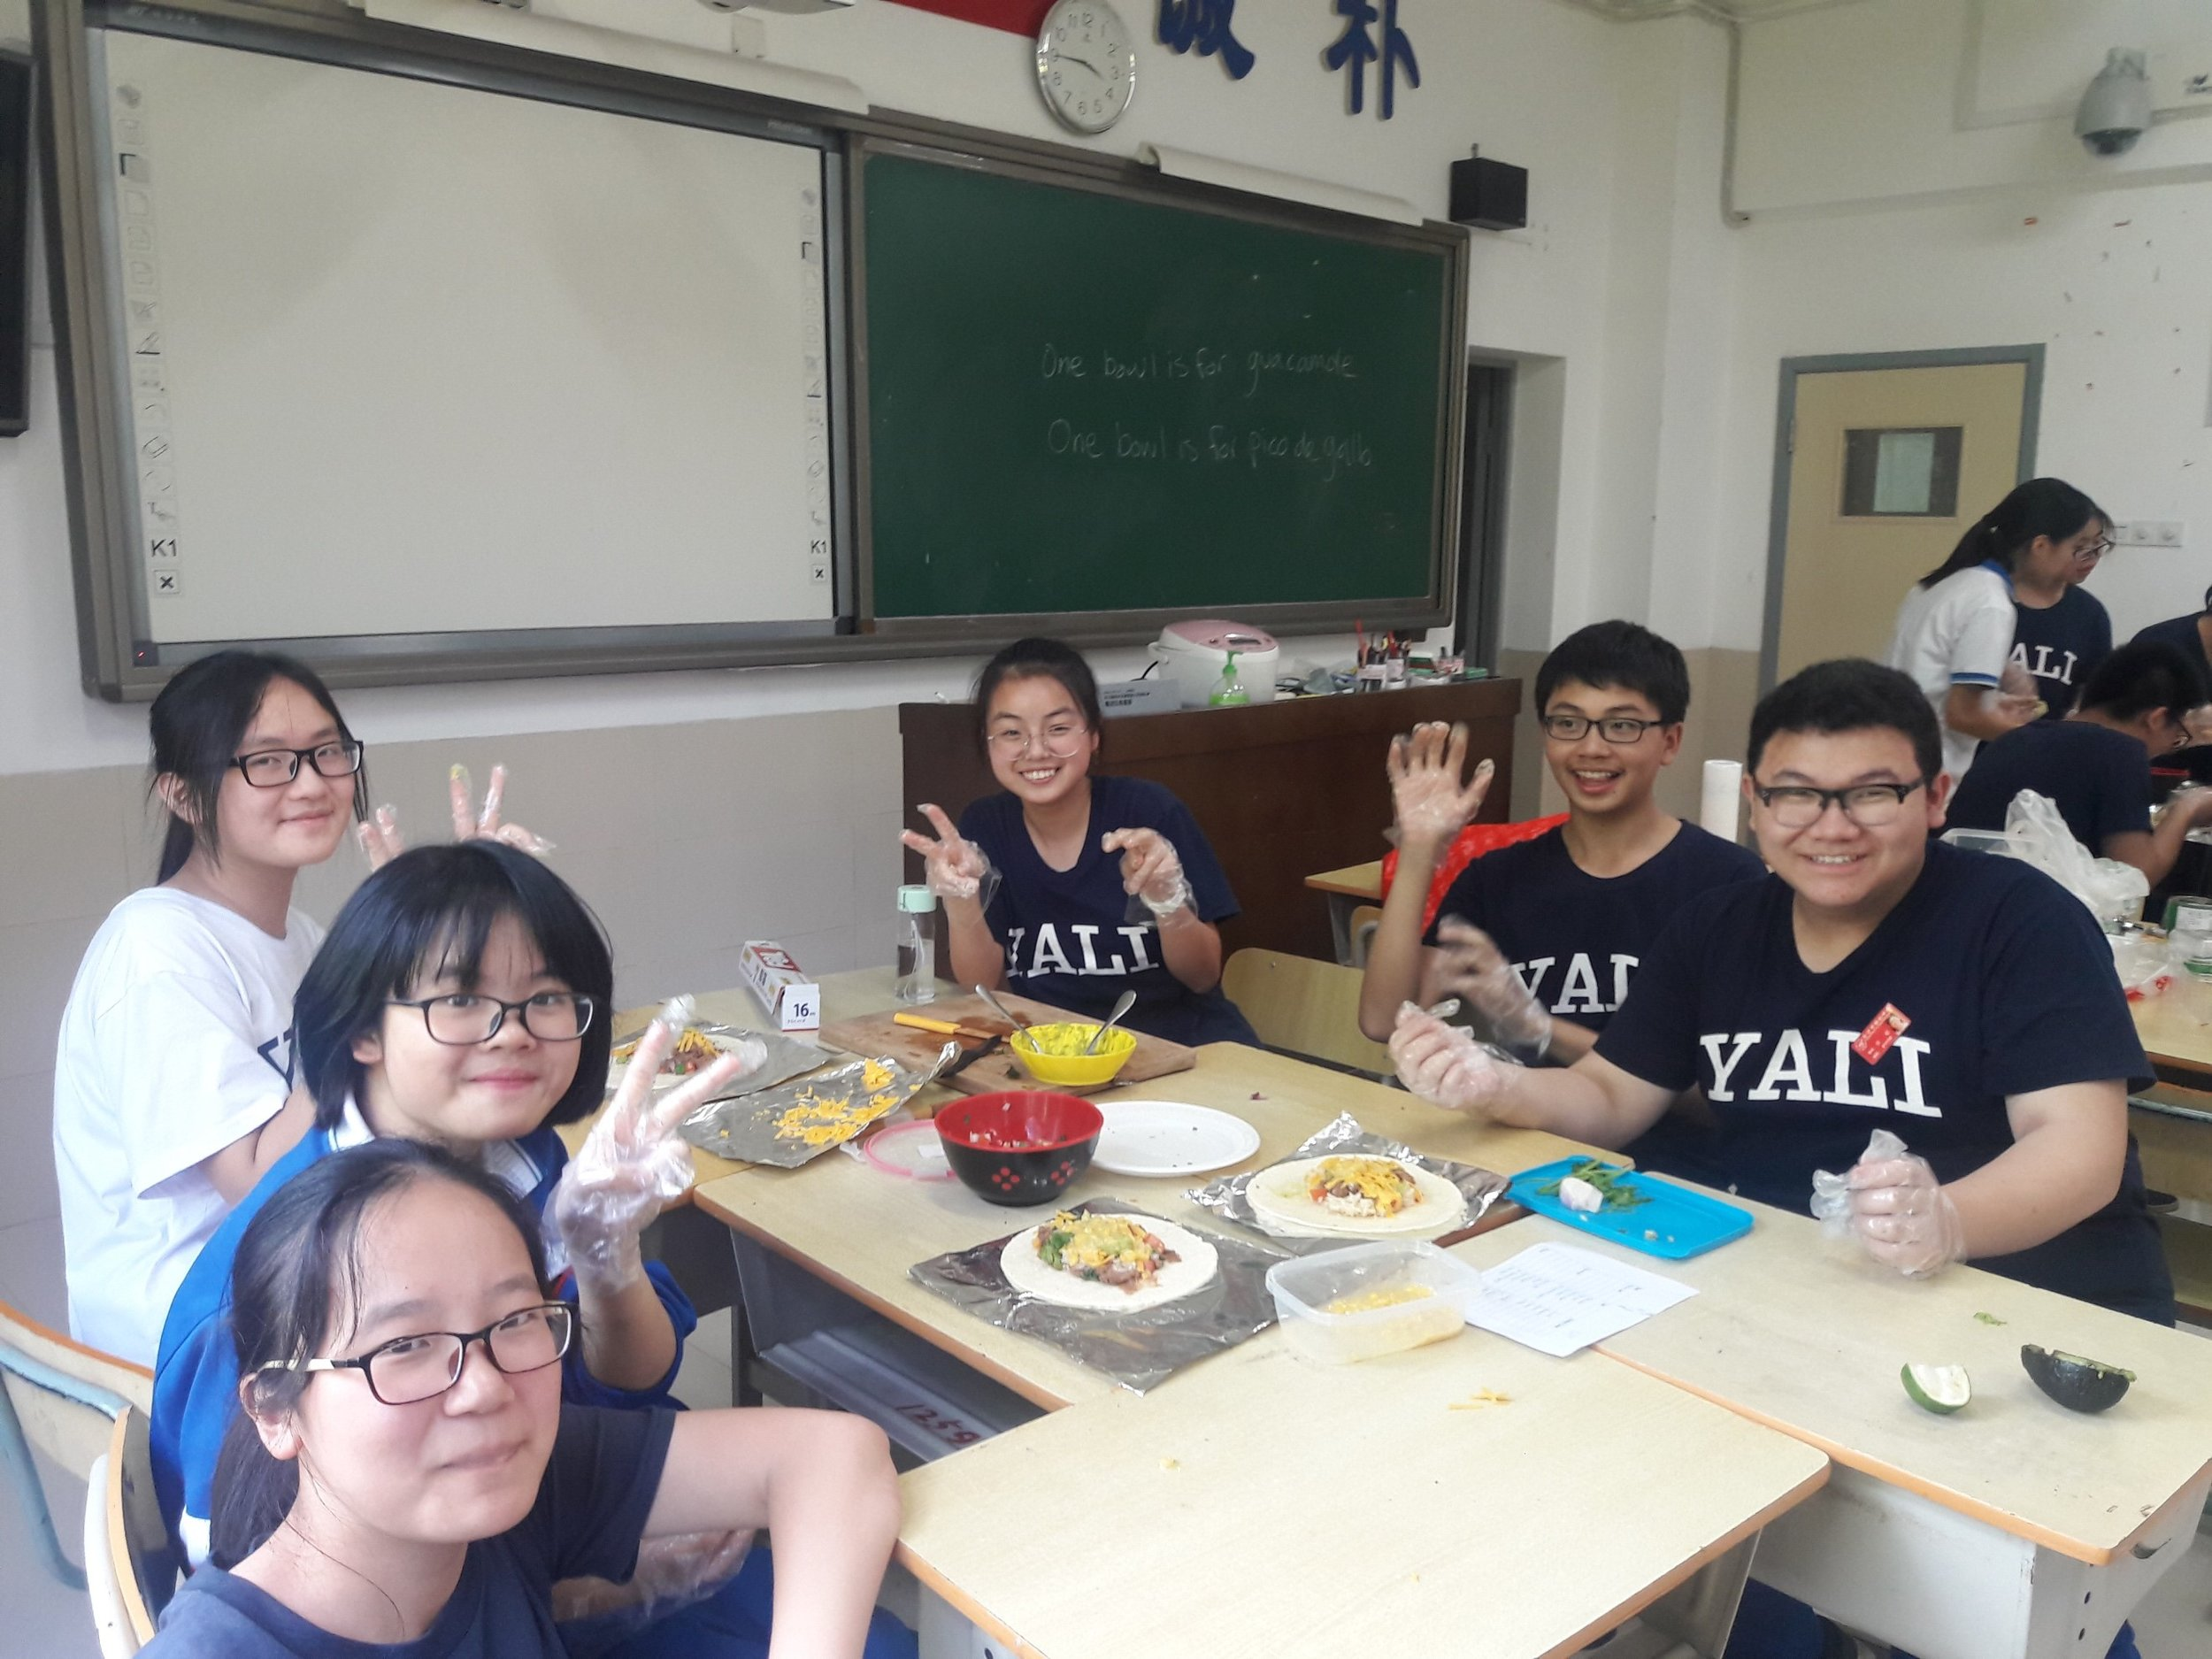 They loved the activity, found it very memorable and learned a little about american food culture. -